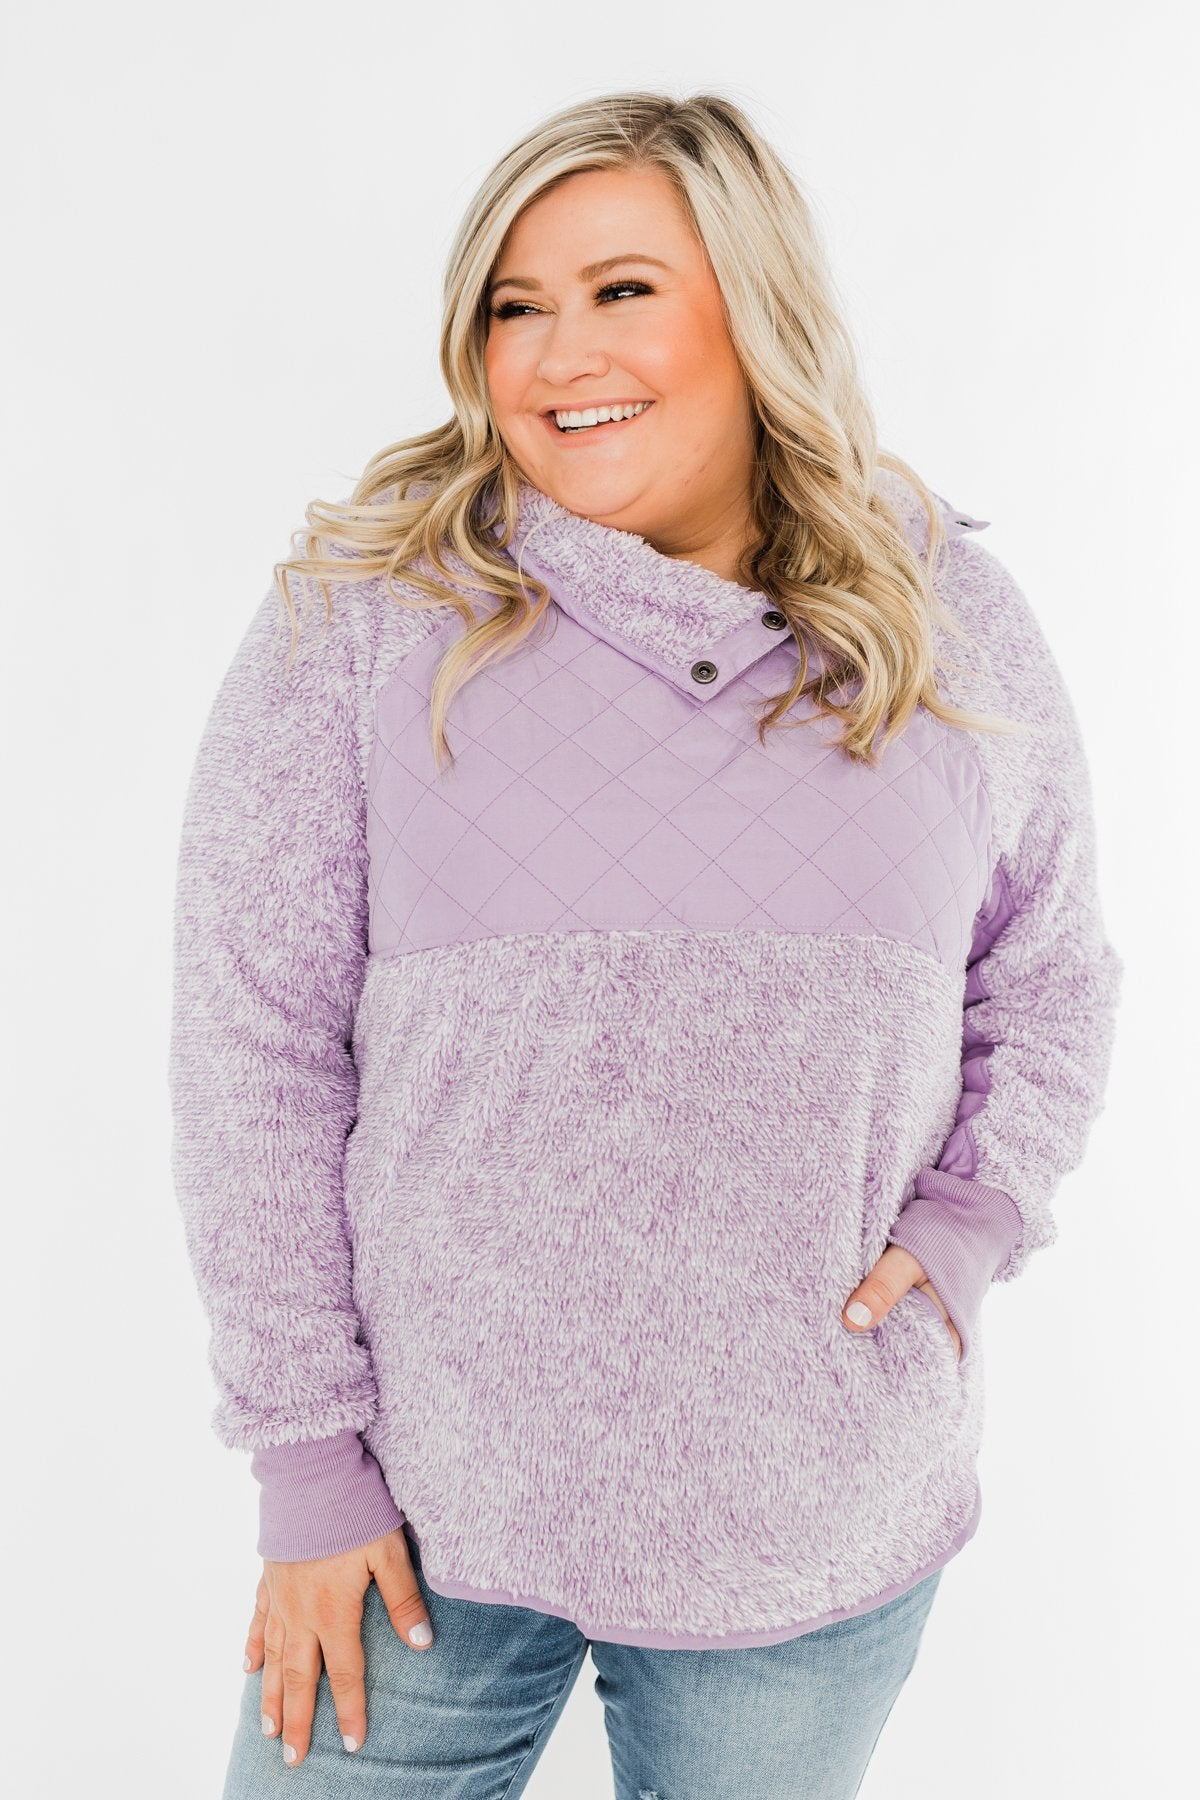 Just My Luck Quilted Sherpa Pullover- Lilac